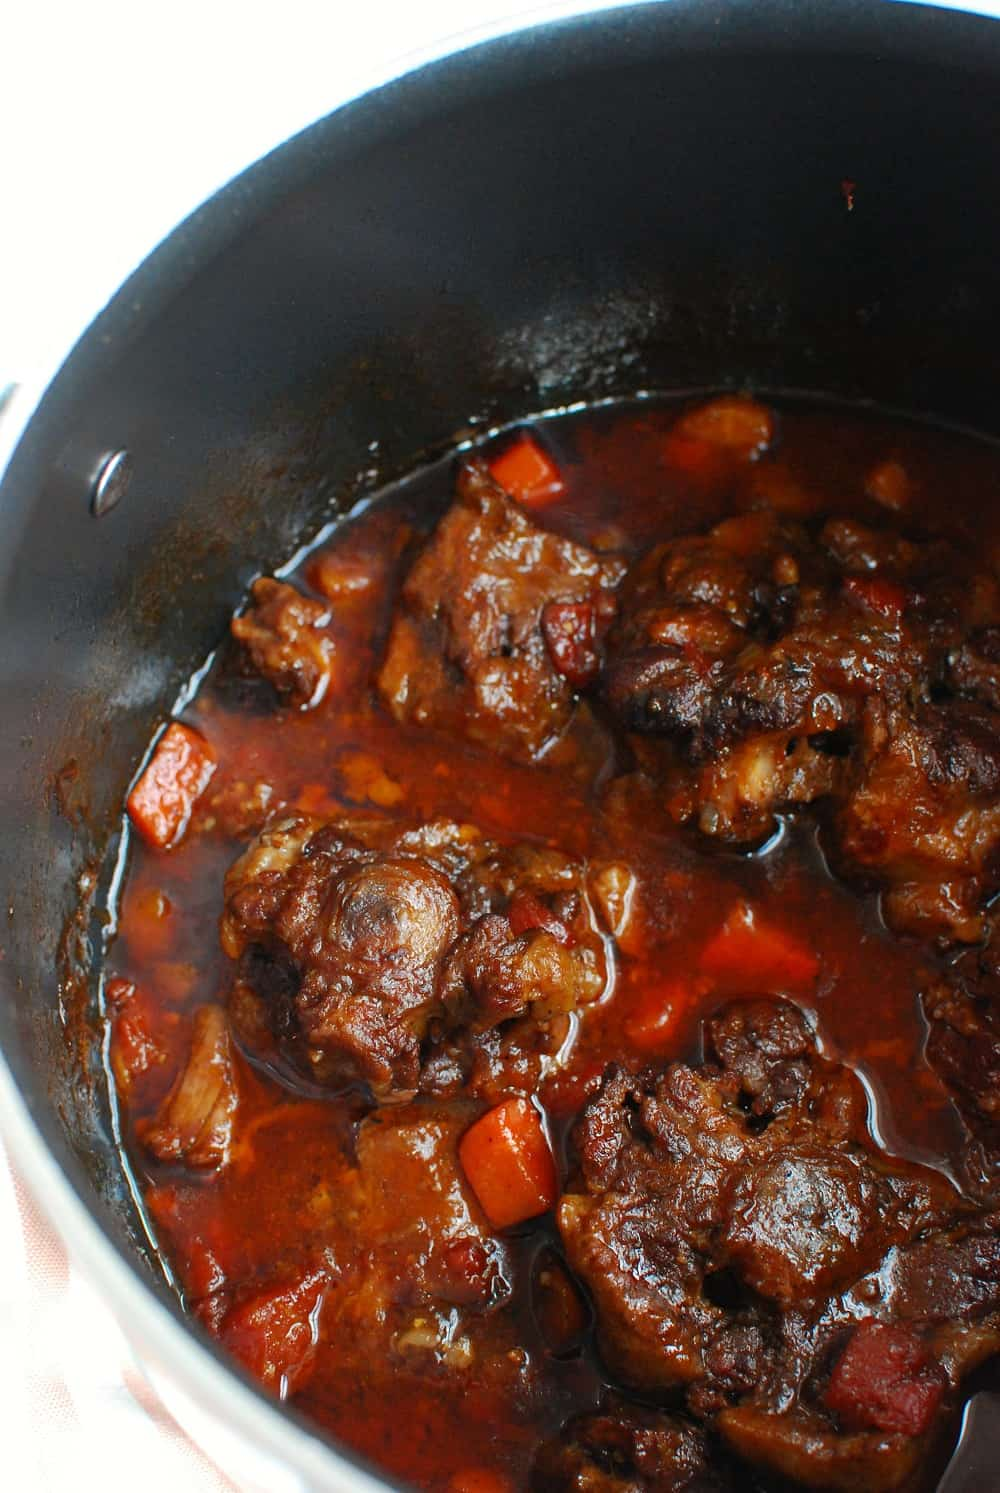 Braised oxtail in a pot at the end of cooking.